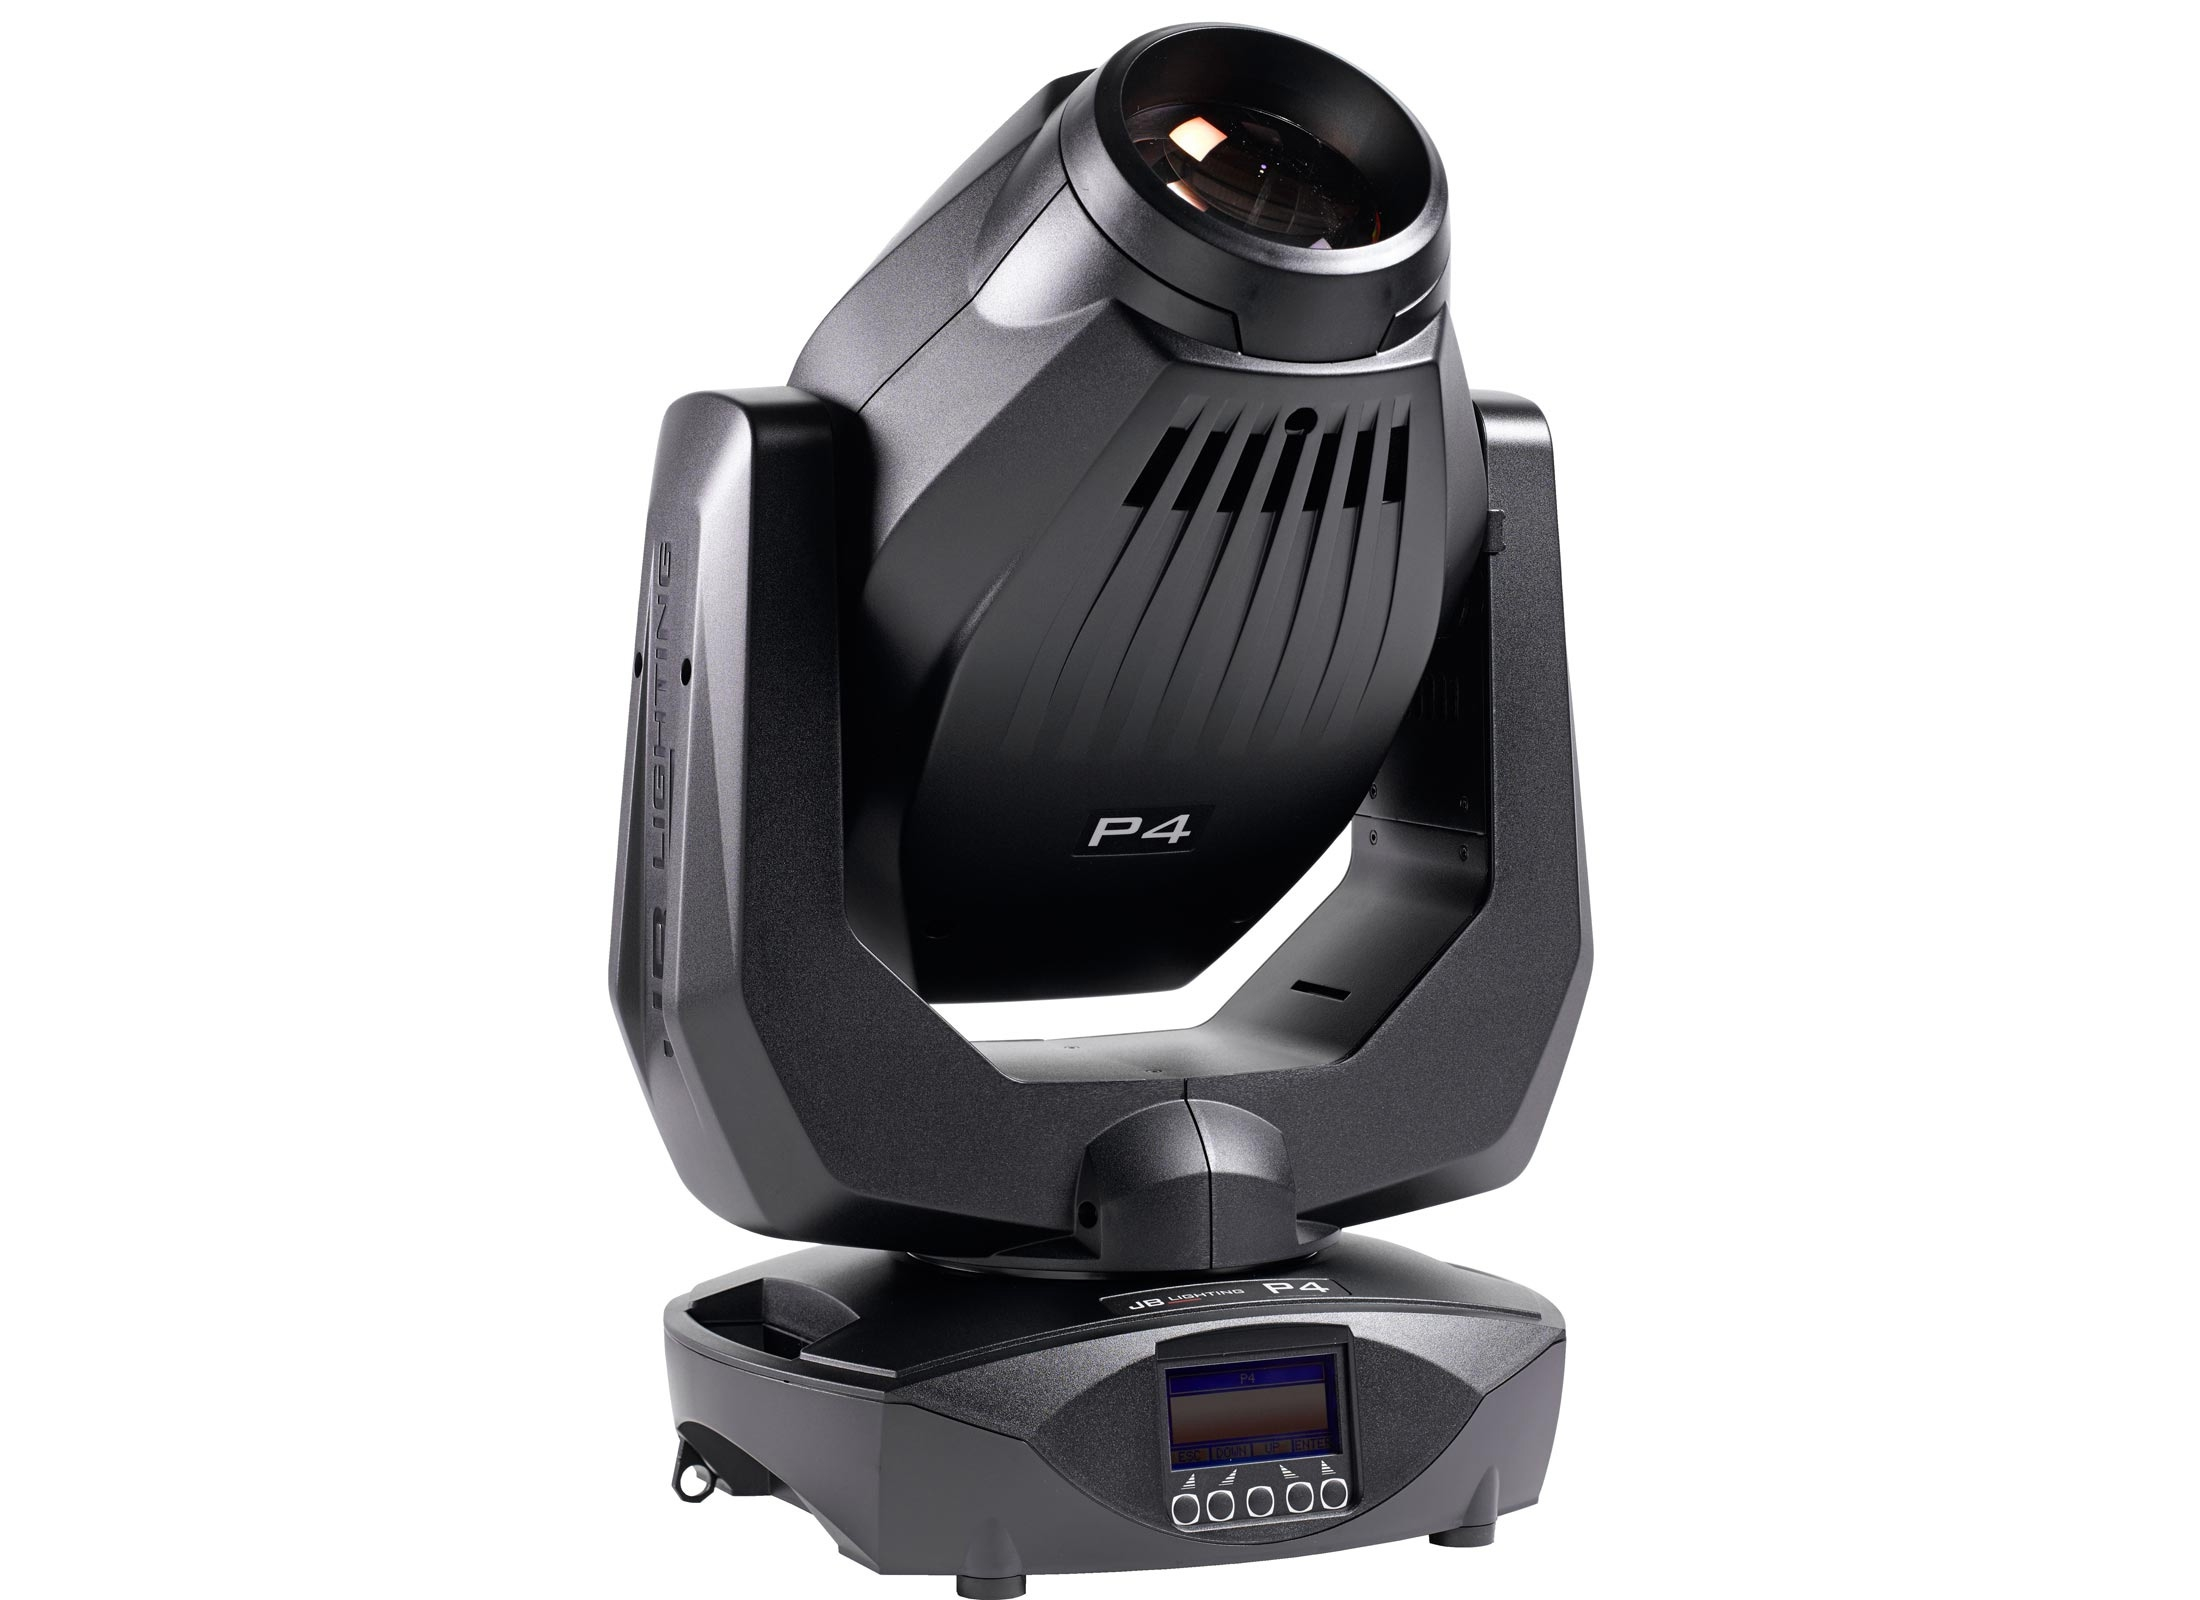 Jb Lighting Varyscan P2 Jb Lighting Varyscan P4 280 Hri Moving Head Spot Inkl Leuchtmittel 2x Camlock Powerconkabel Offenes Ende